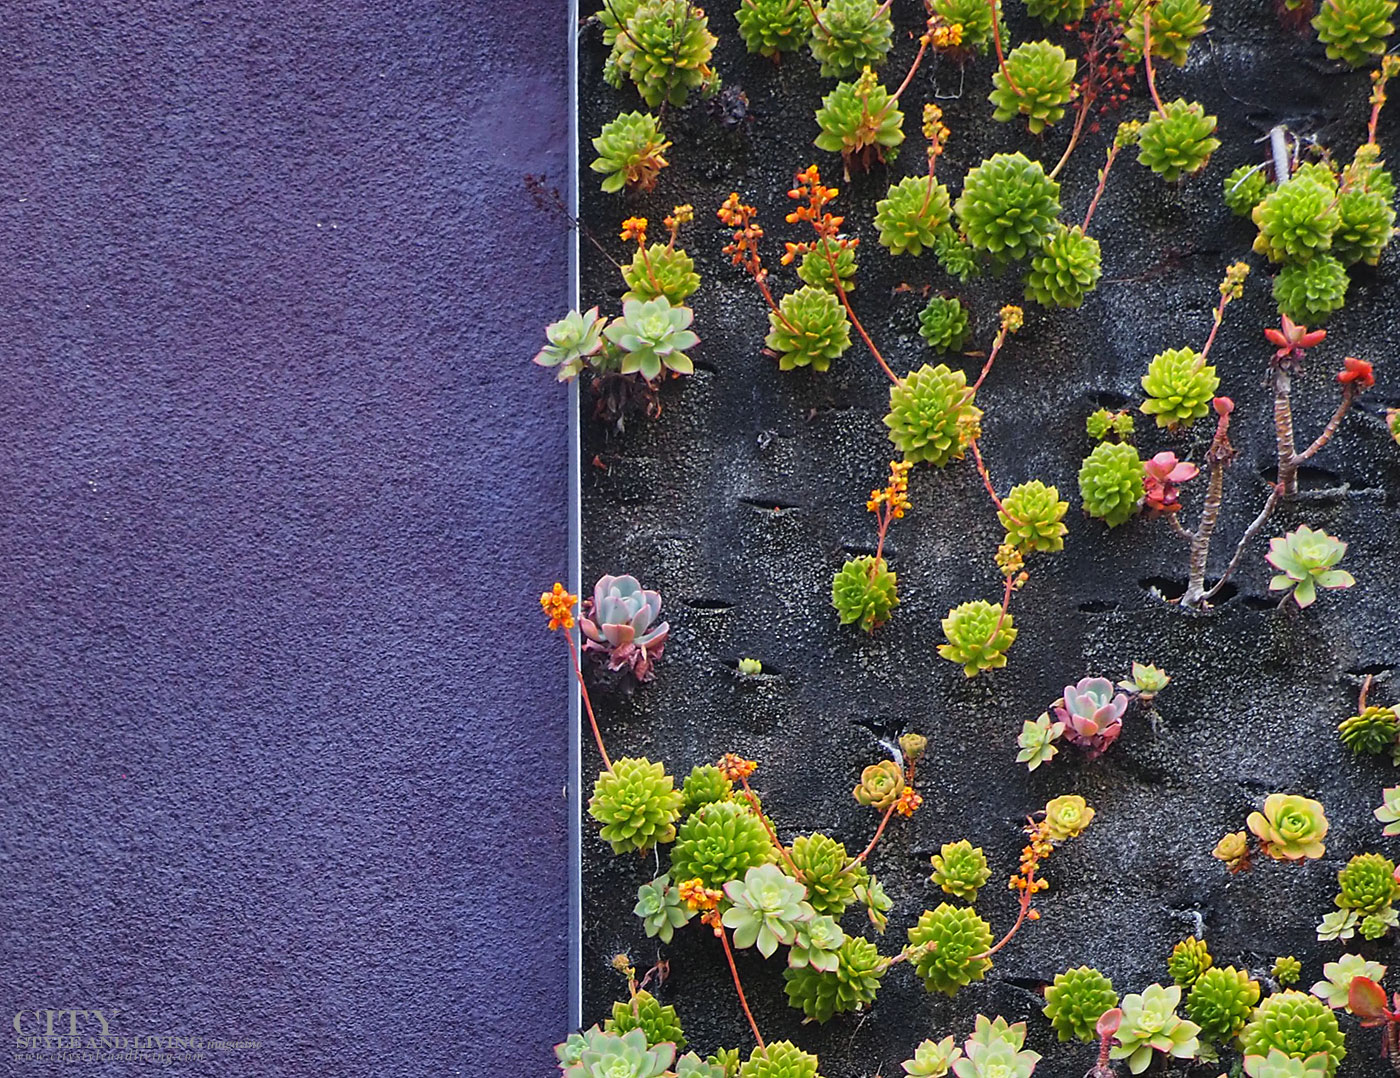 City Style and Living Magazine Summer 2019 Hotels Avenue of the Arts Costa Mesa succulent wall